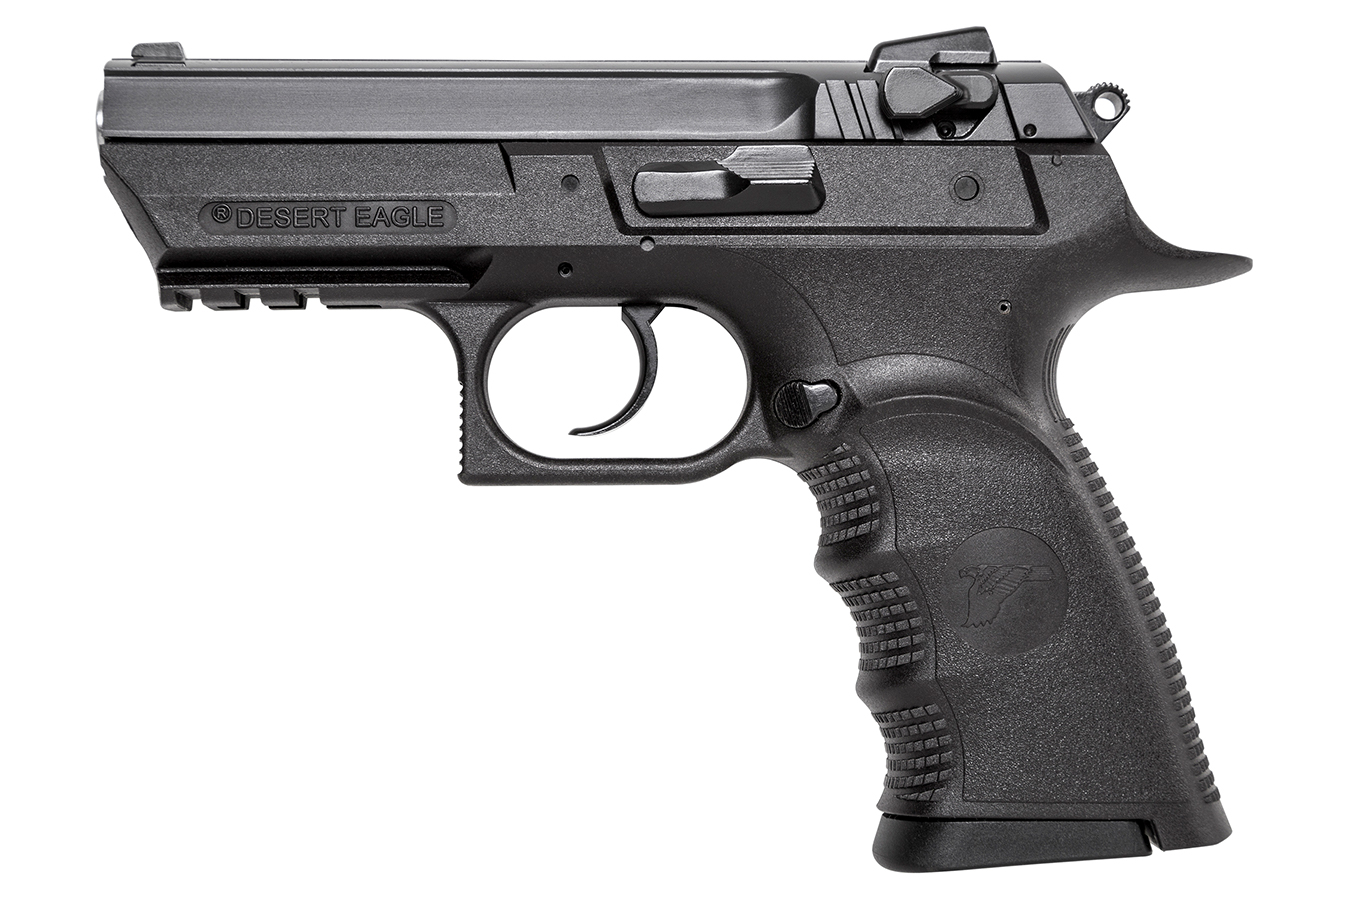 BABY EAGLE 9MM COMPACT 3.85` BBL BLACK